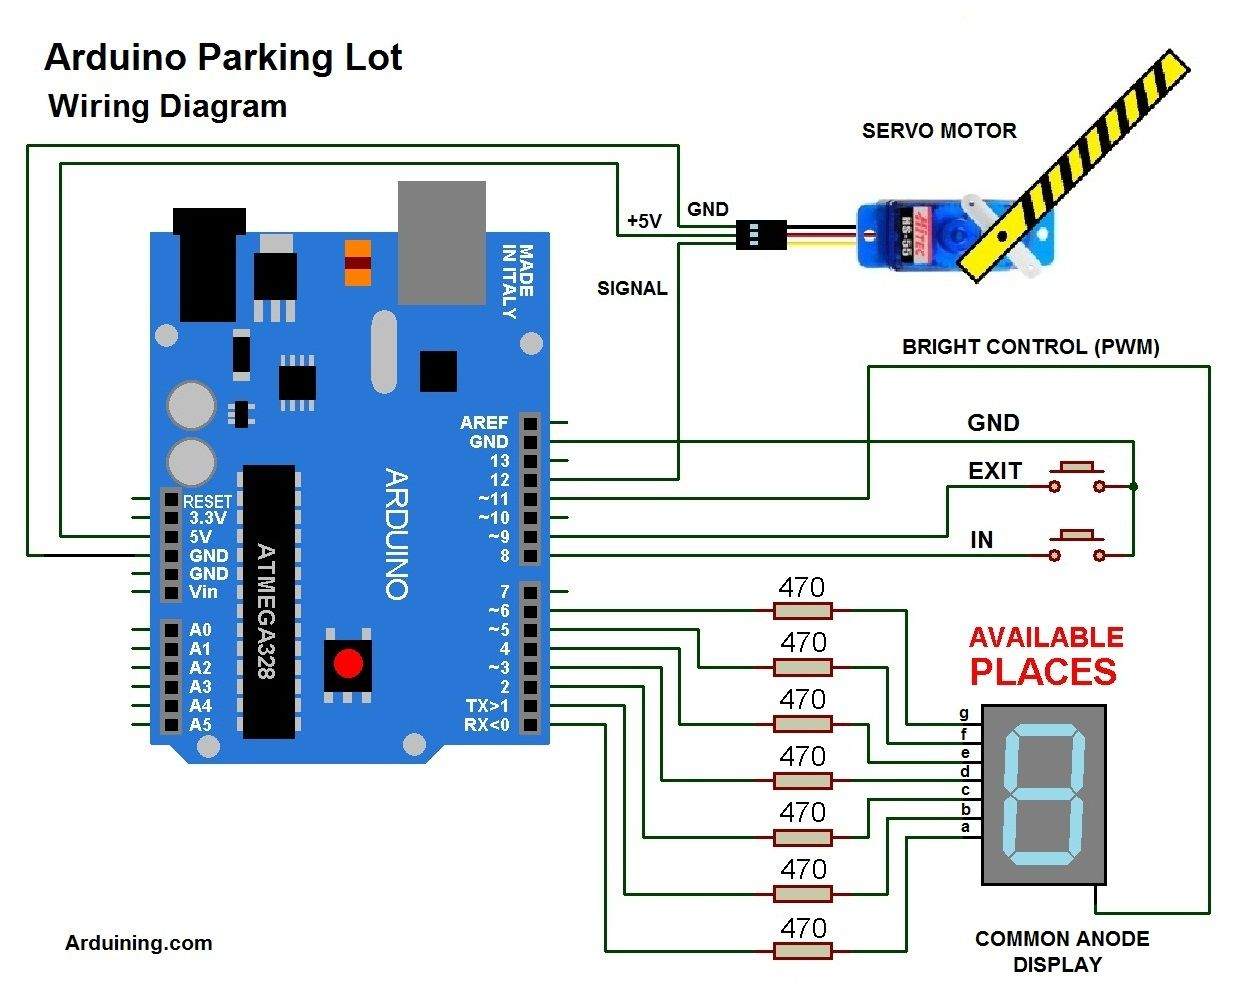 medium resolution of wiring diagram here is the code parkingl02 pde arduining com 08 jul 2012 code used in the production of the youtube material